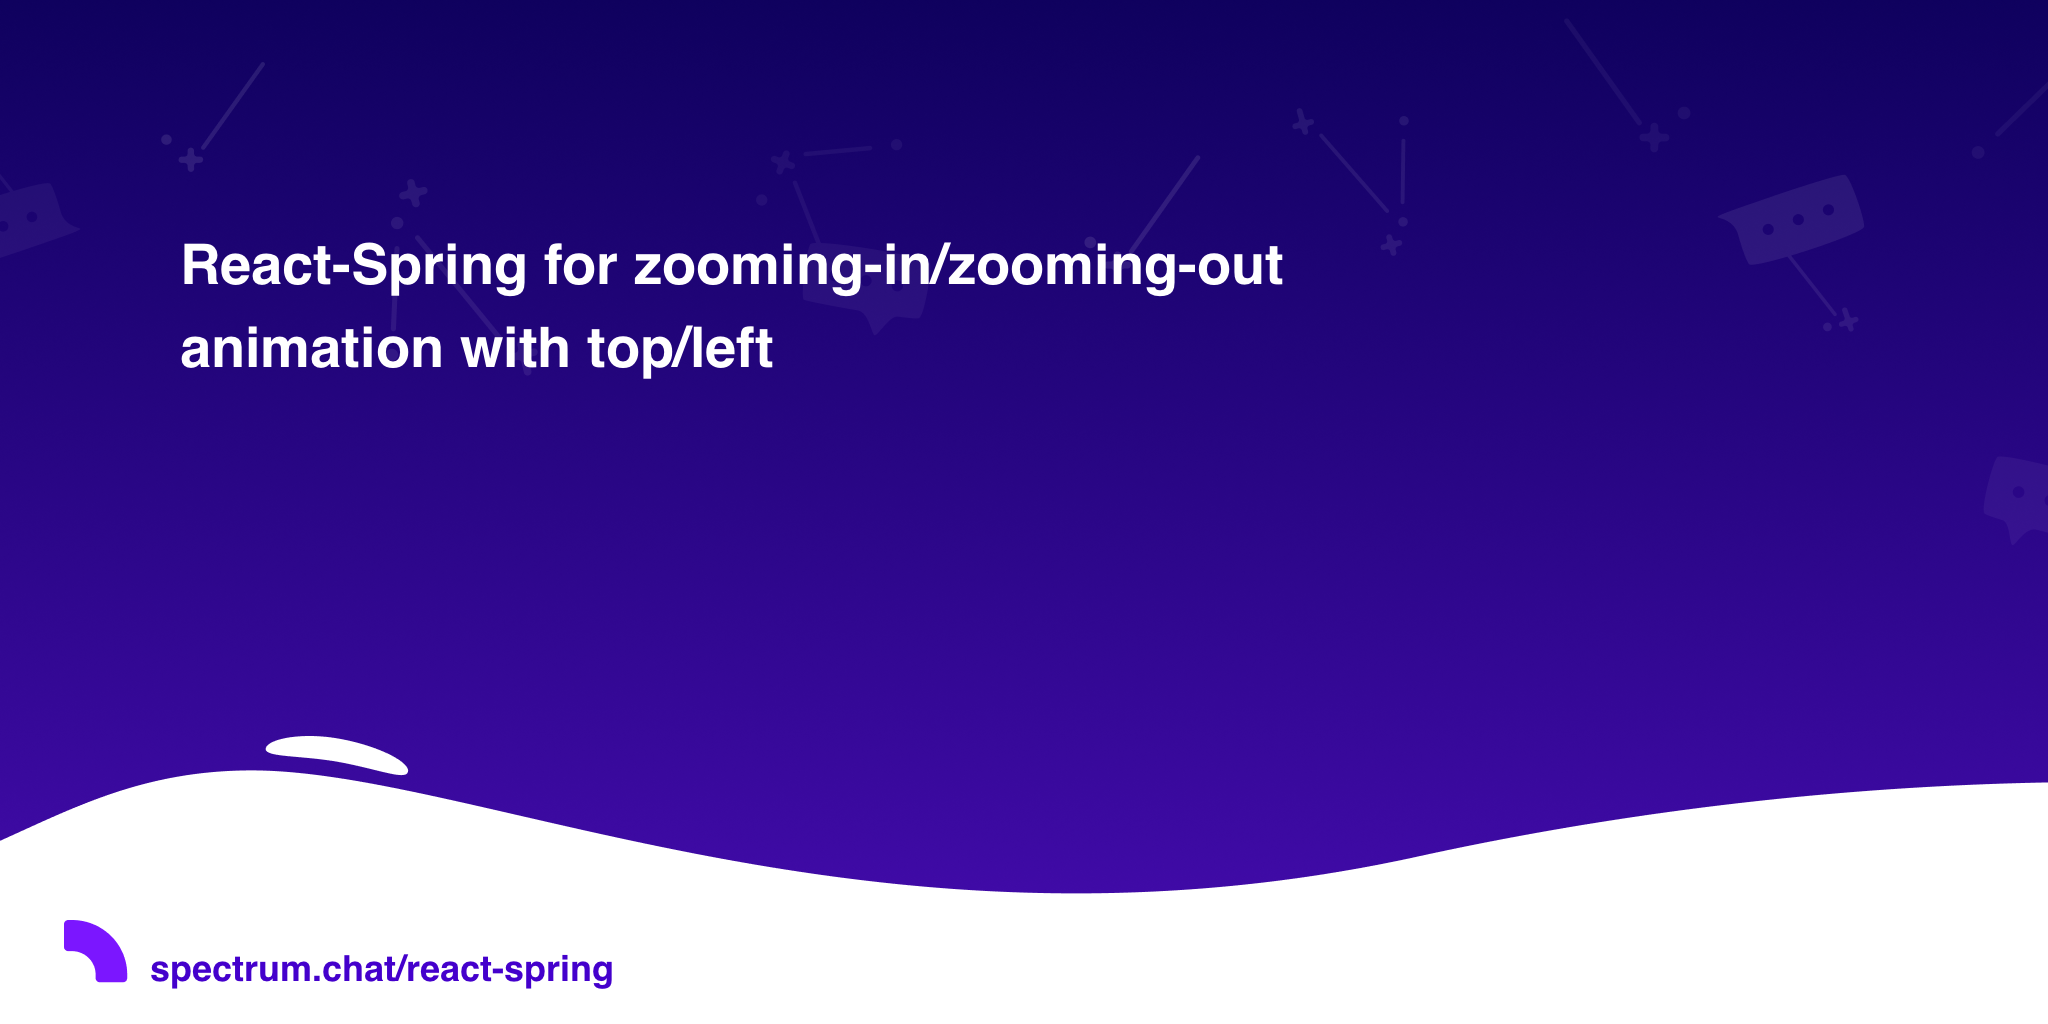 React-Spring for zooming-in/zooming-out animation with top/left